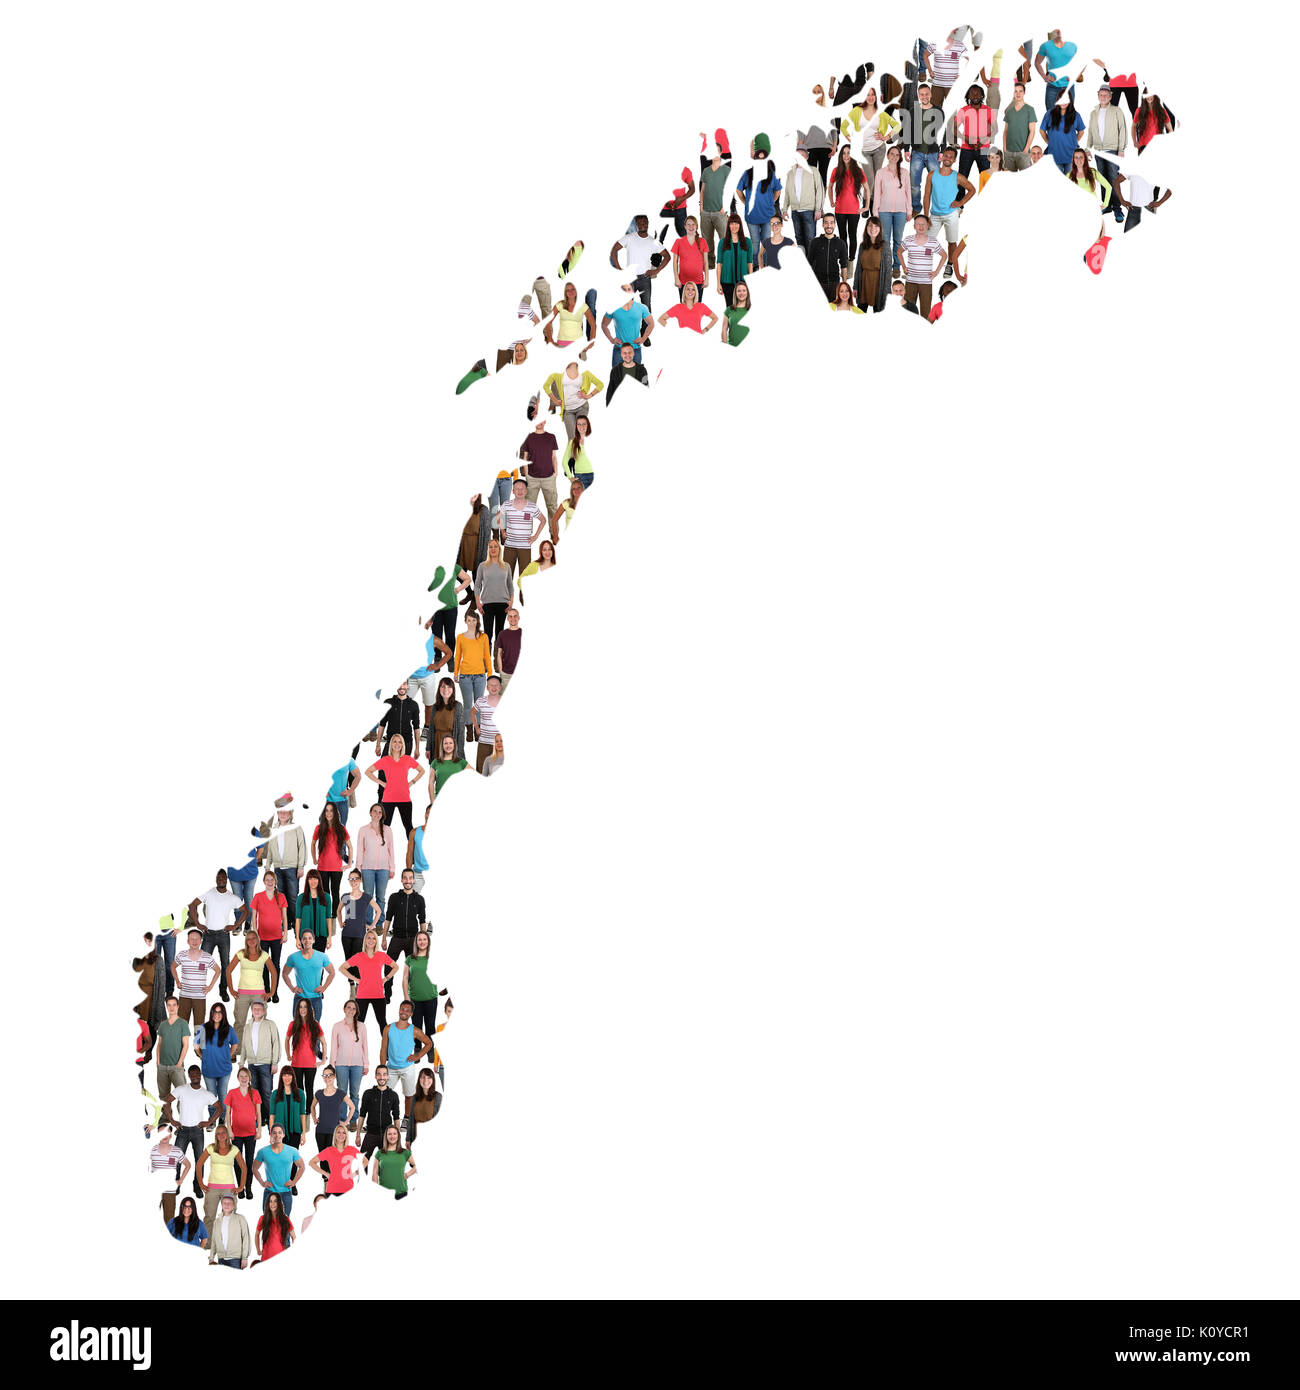 Norway map multicultural group of people integration immigration diversity isolated - Stock Image